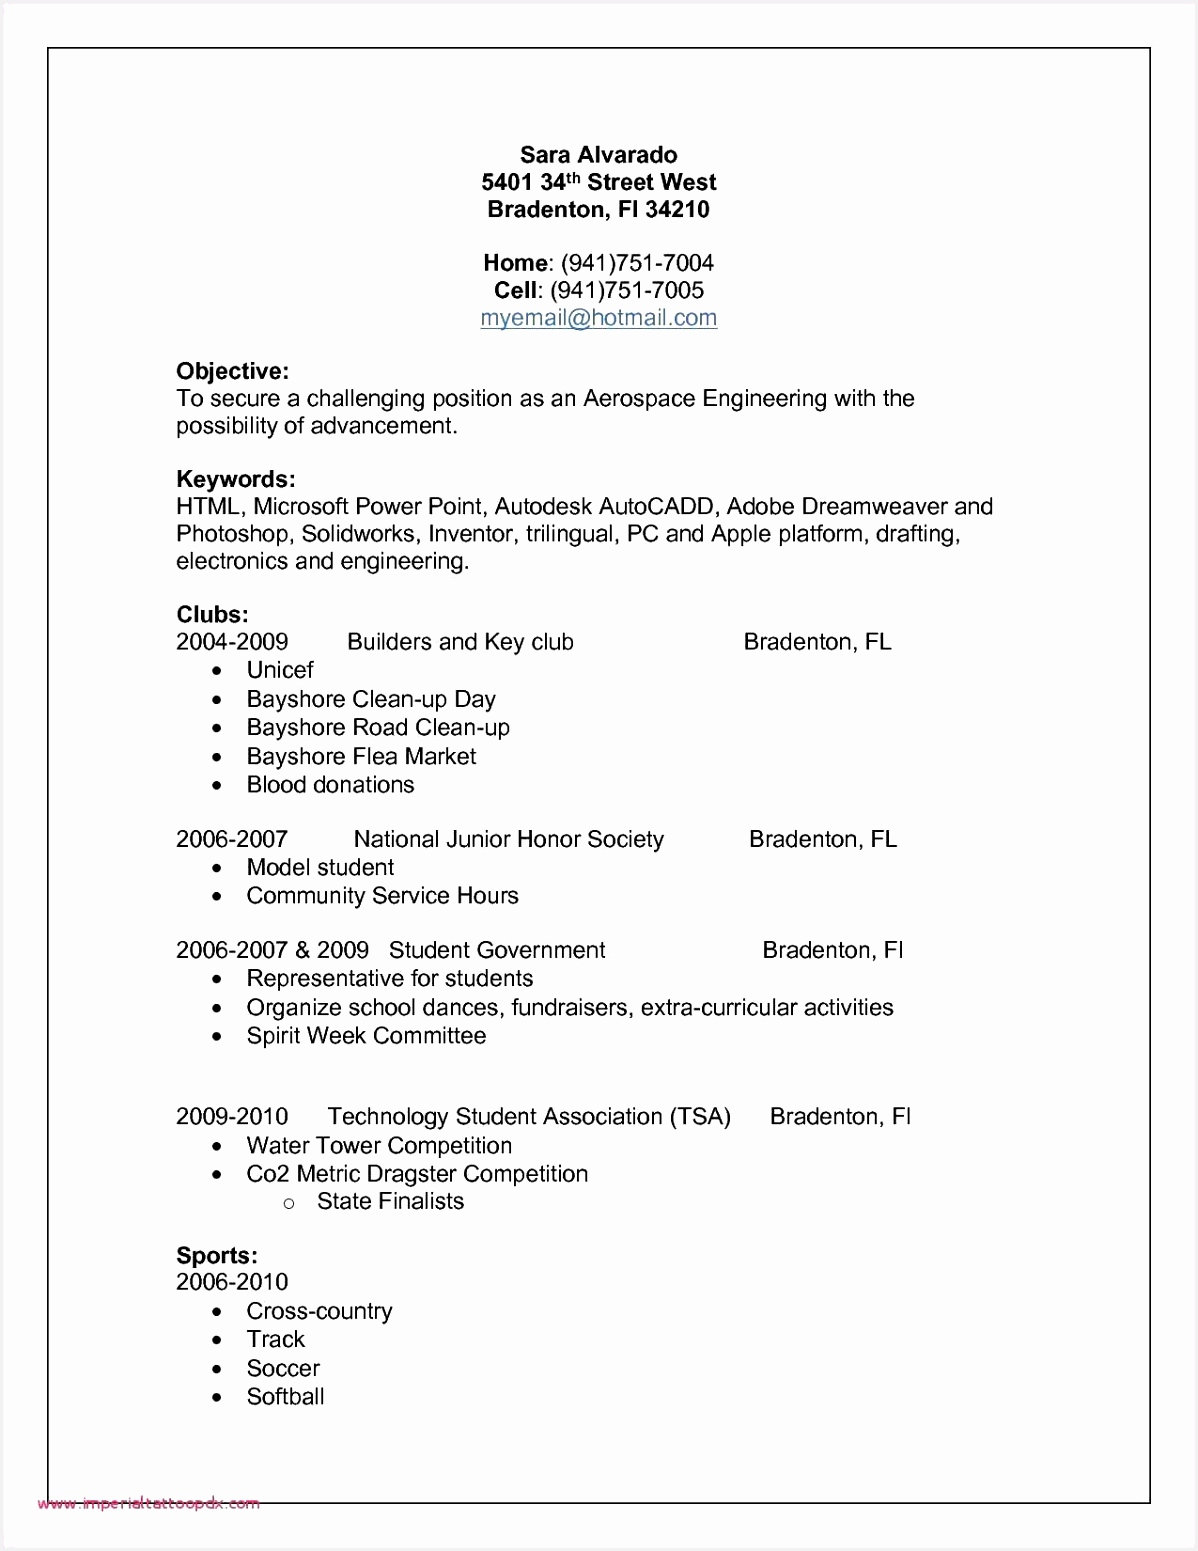 Good Resume Example In Malaysia Elegant Sample Resume for Practical Student In Malaysia Professional Resume 15511198jkdaw